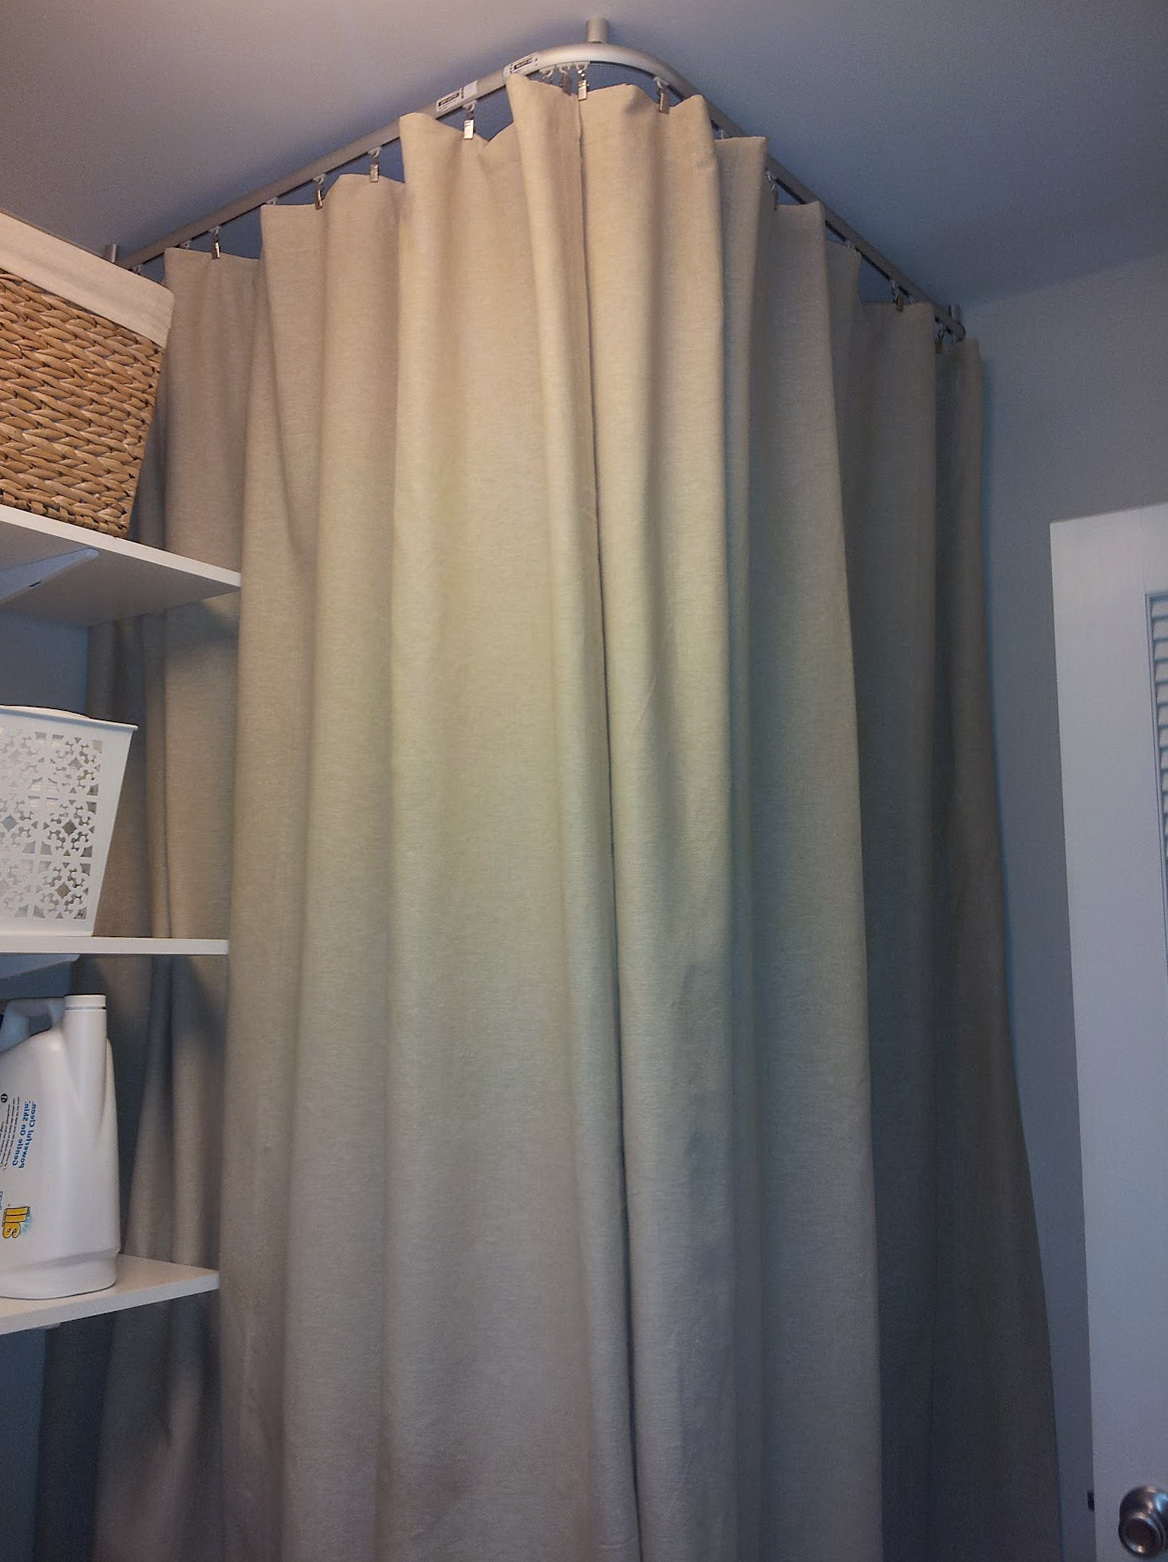 Ceiling Mount Curtain Track Ikea  Curtain Ideas